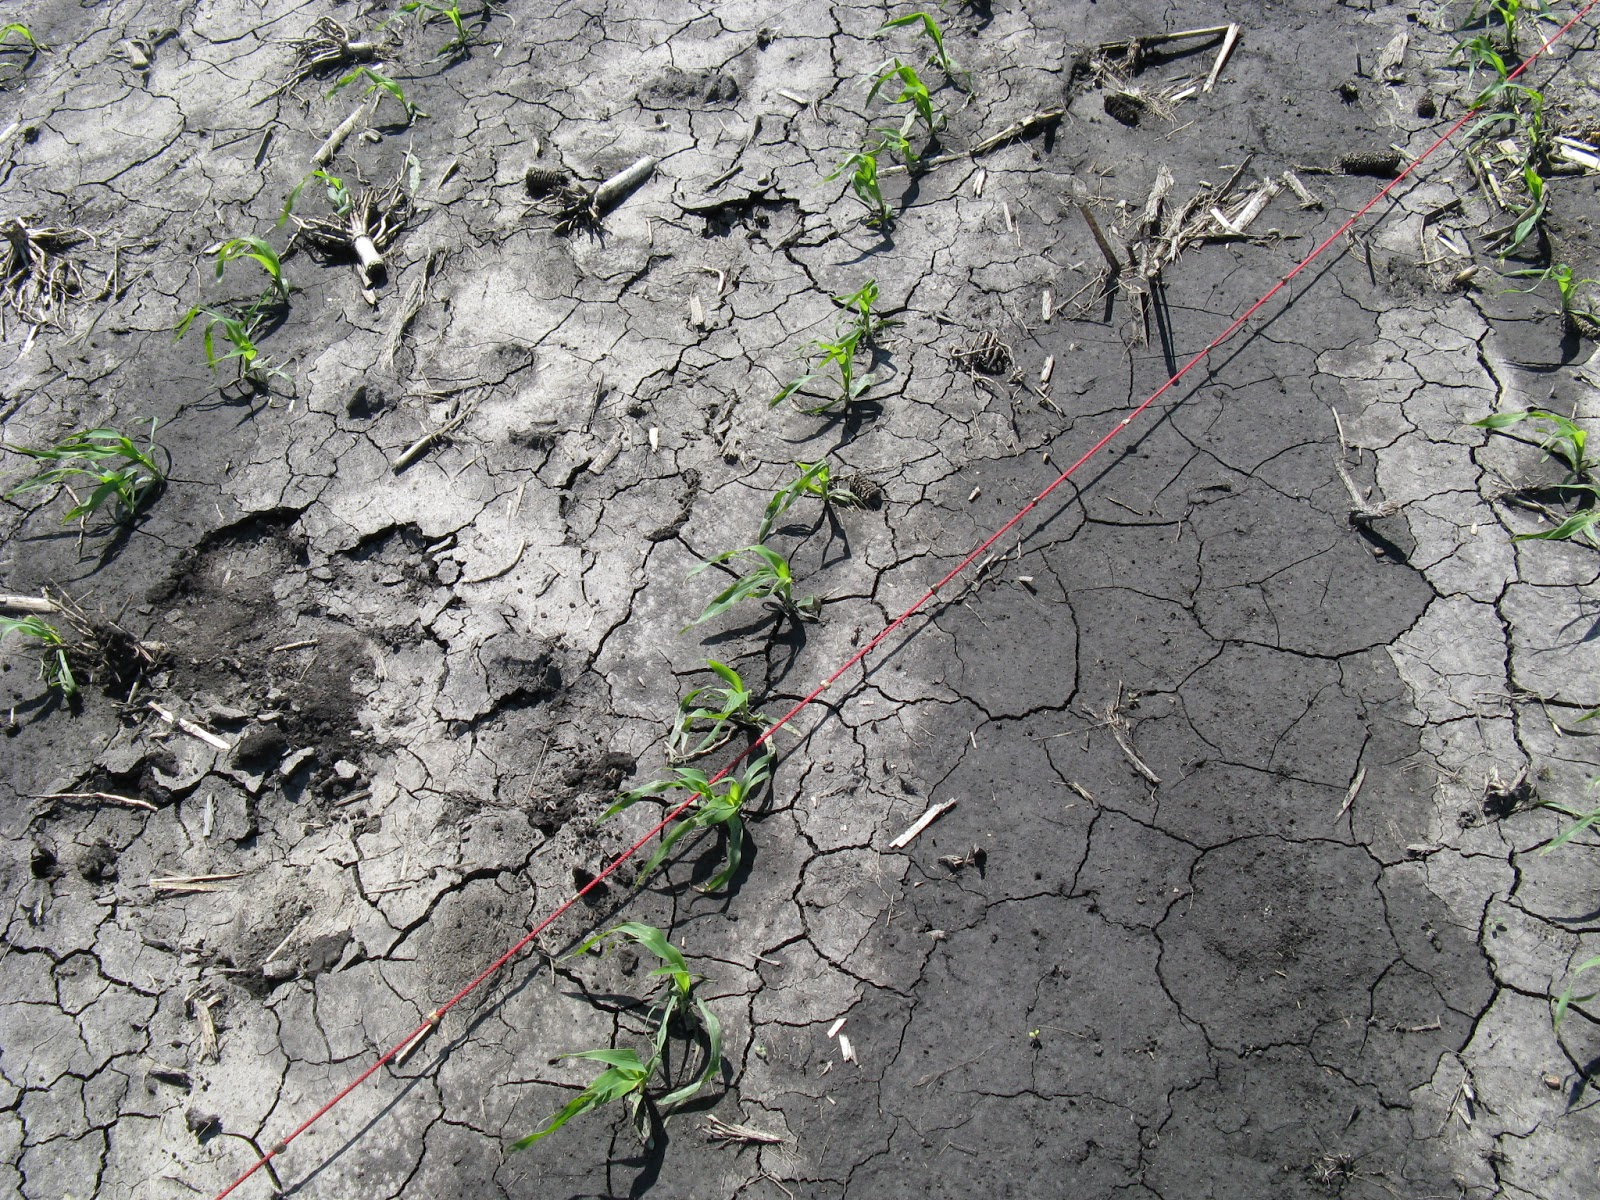 cracked soil with a few seedlings and wet areas low lying foot prints and wheel tracks.